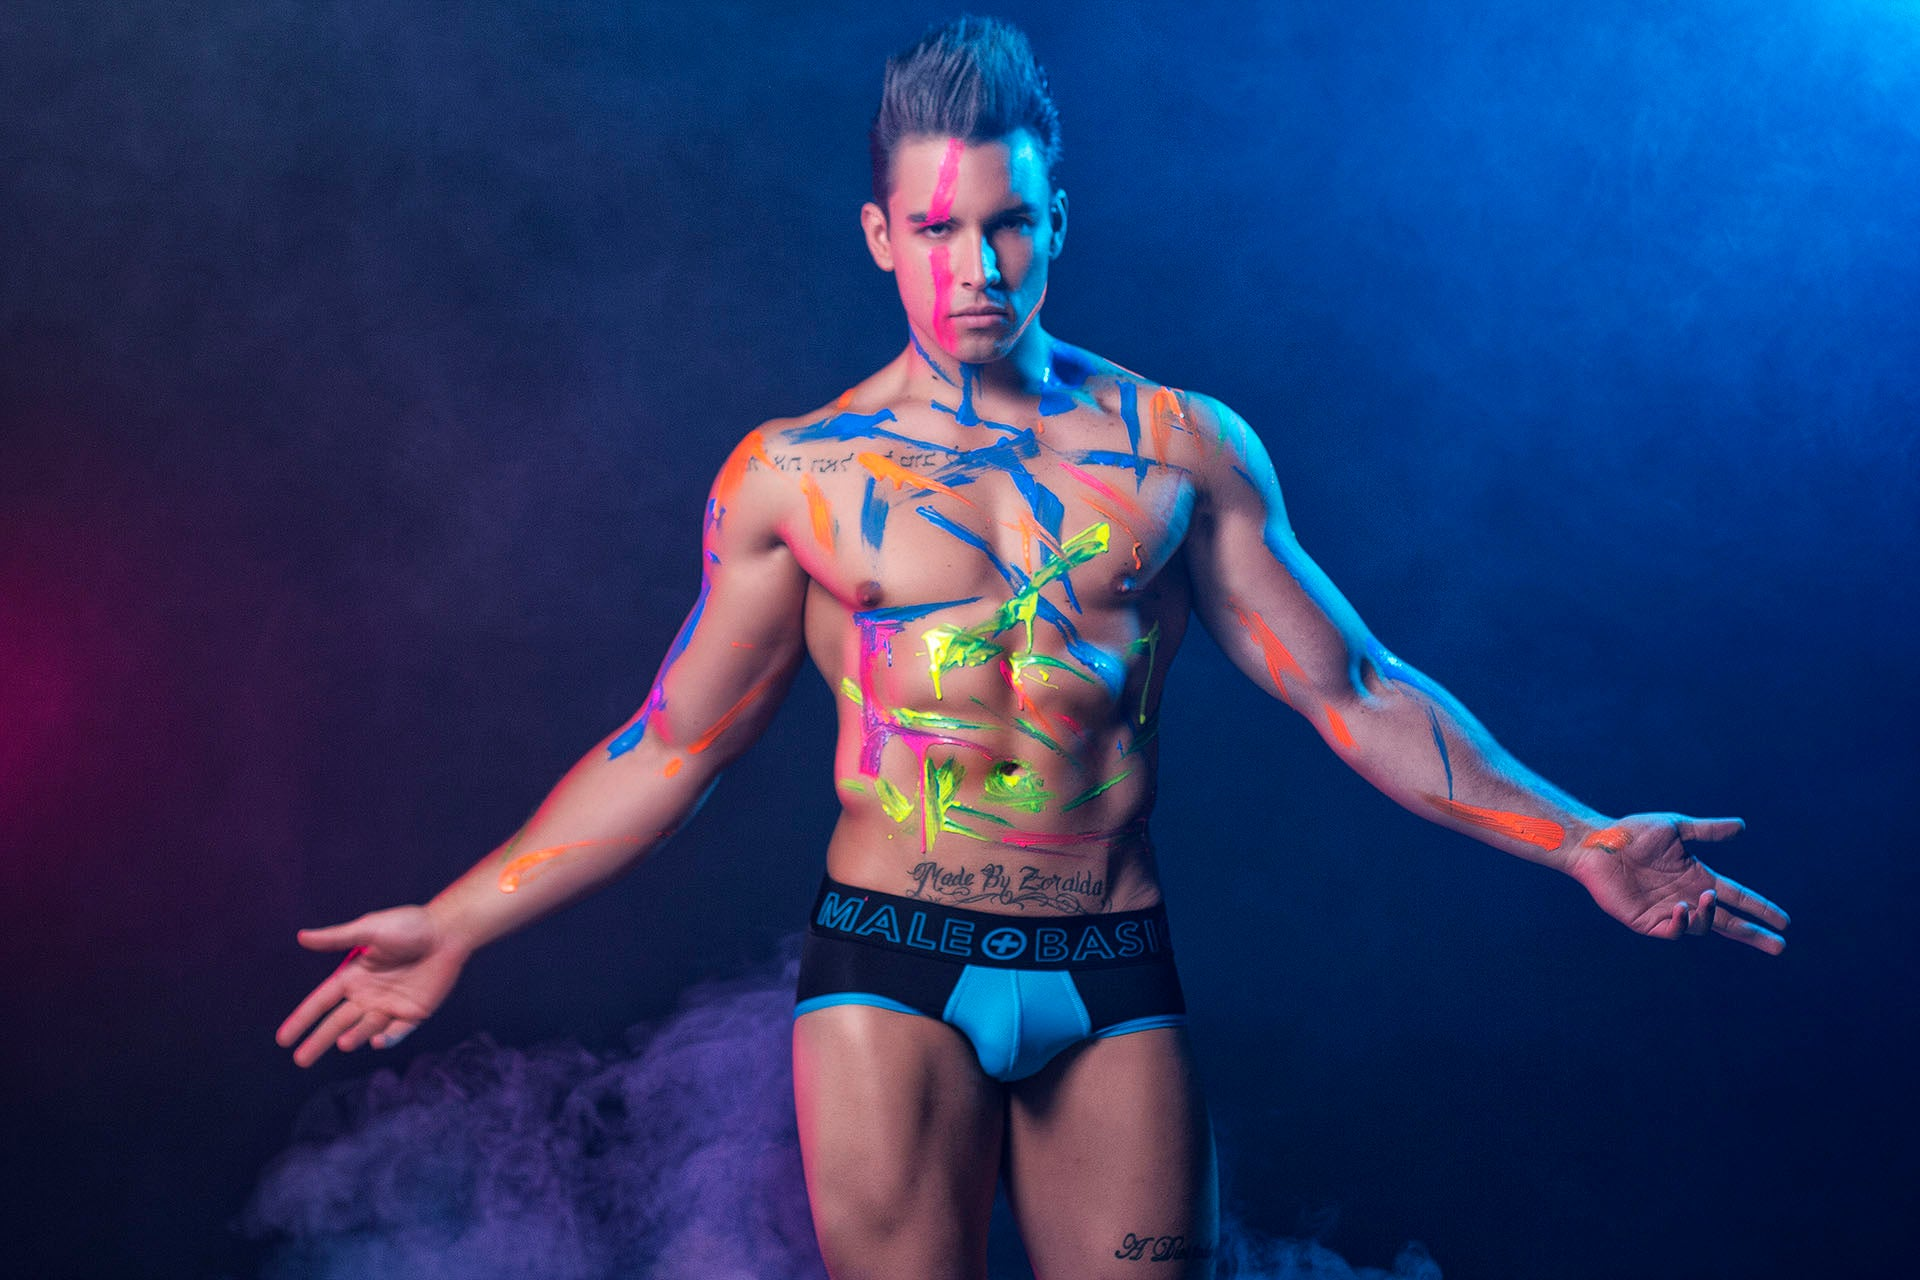 Malebasics Neon Briefs